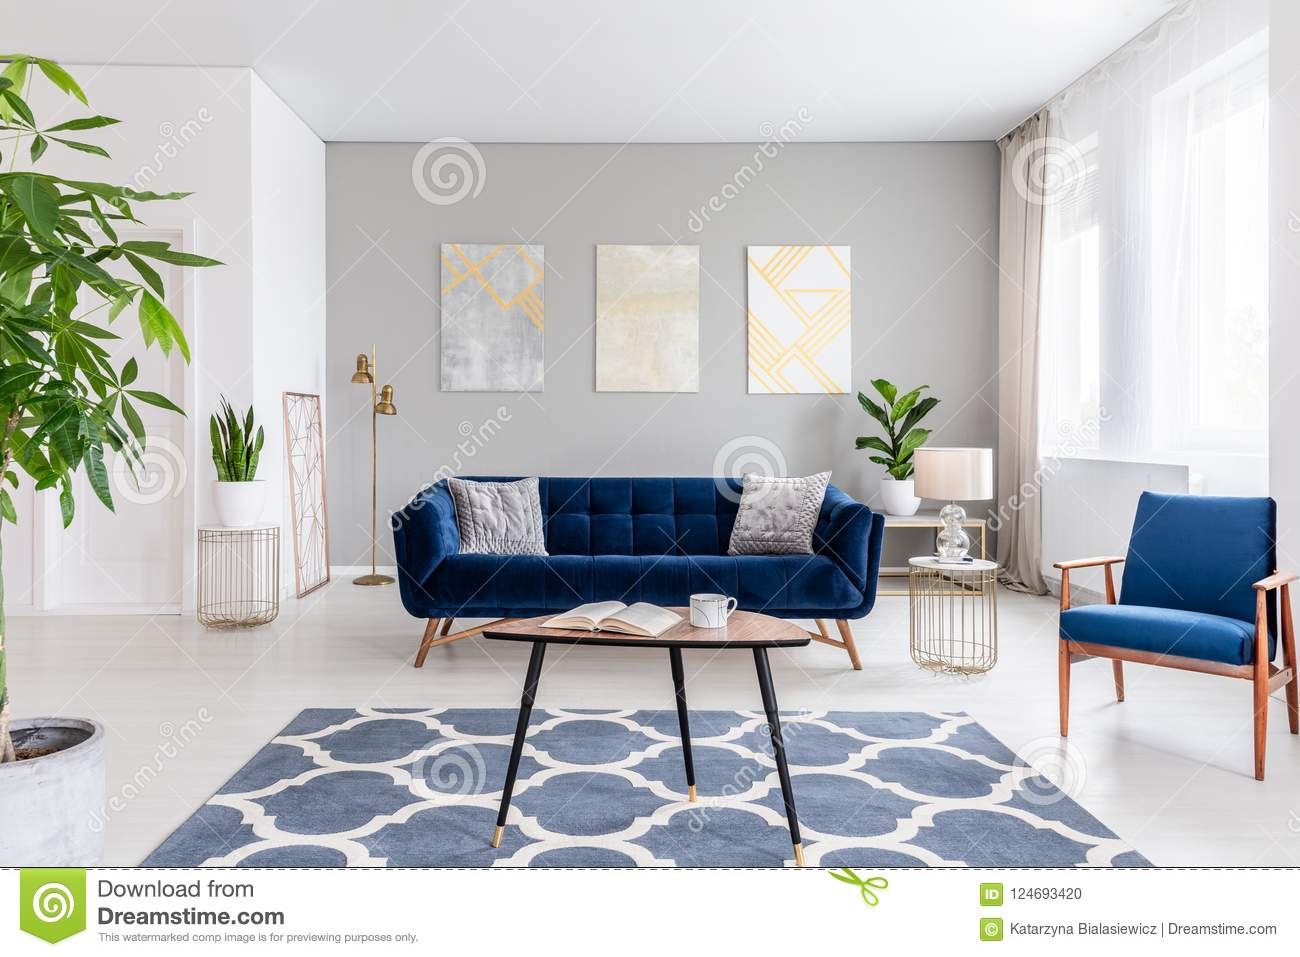 Real Photo Of An Elegant Living Room Interior With A Blue Sofa